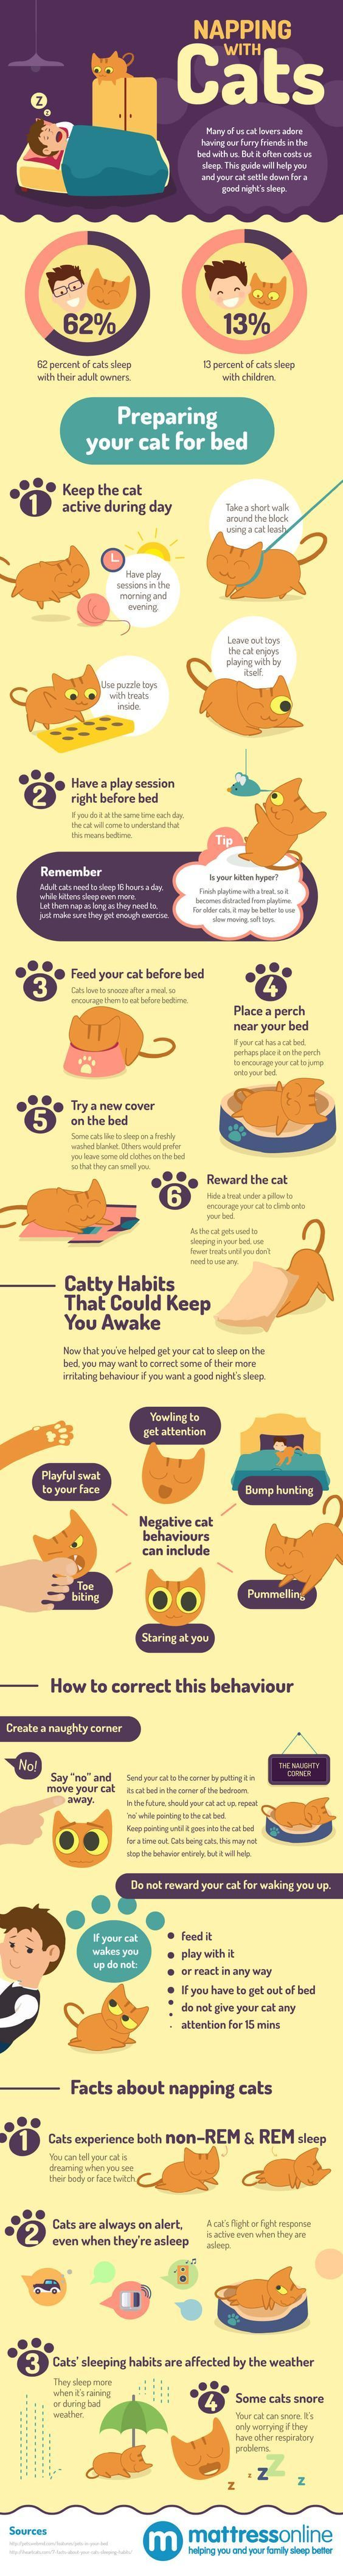 If you are one of the pet owners, you should know by now, that anything and everything that you do is going to be interrupted and interfered in by your pet. Something as simple as sleeping can become a challenging task when your pet is around. Here is a guide to successfully taking a nap with your cats: Infographic by – Mattress Online * You can get additional details at the image link. #LovelyCats